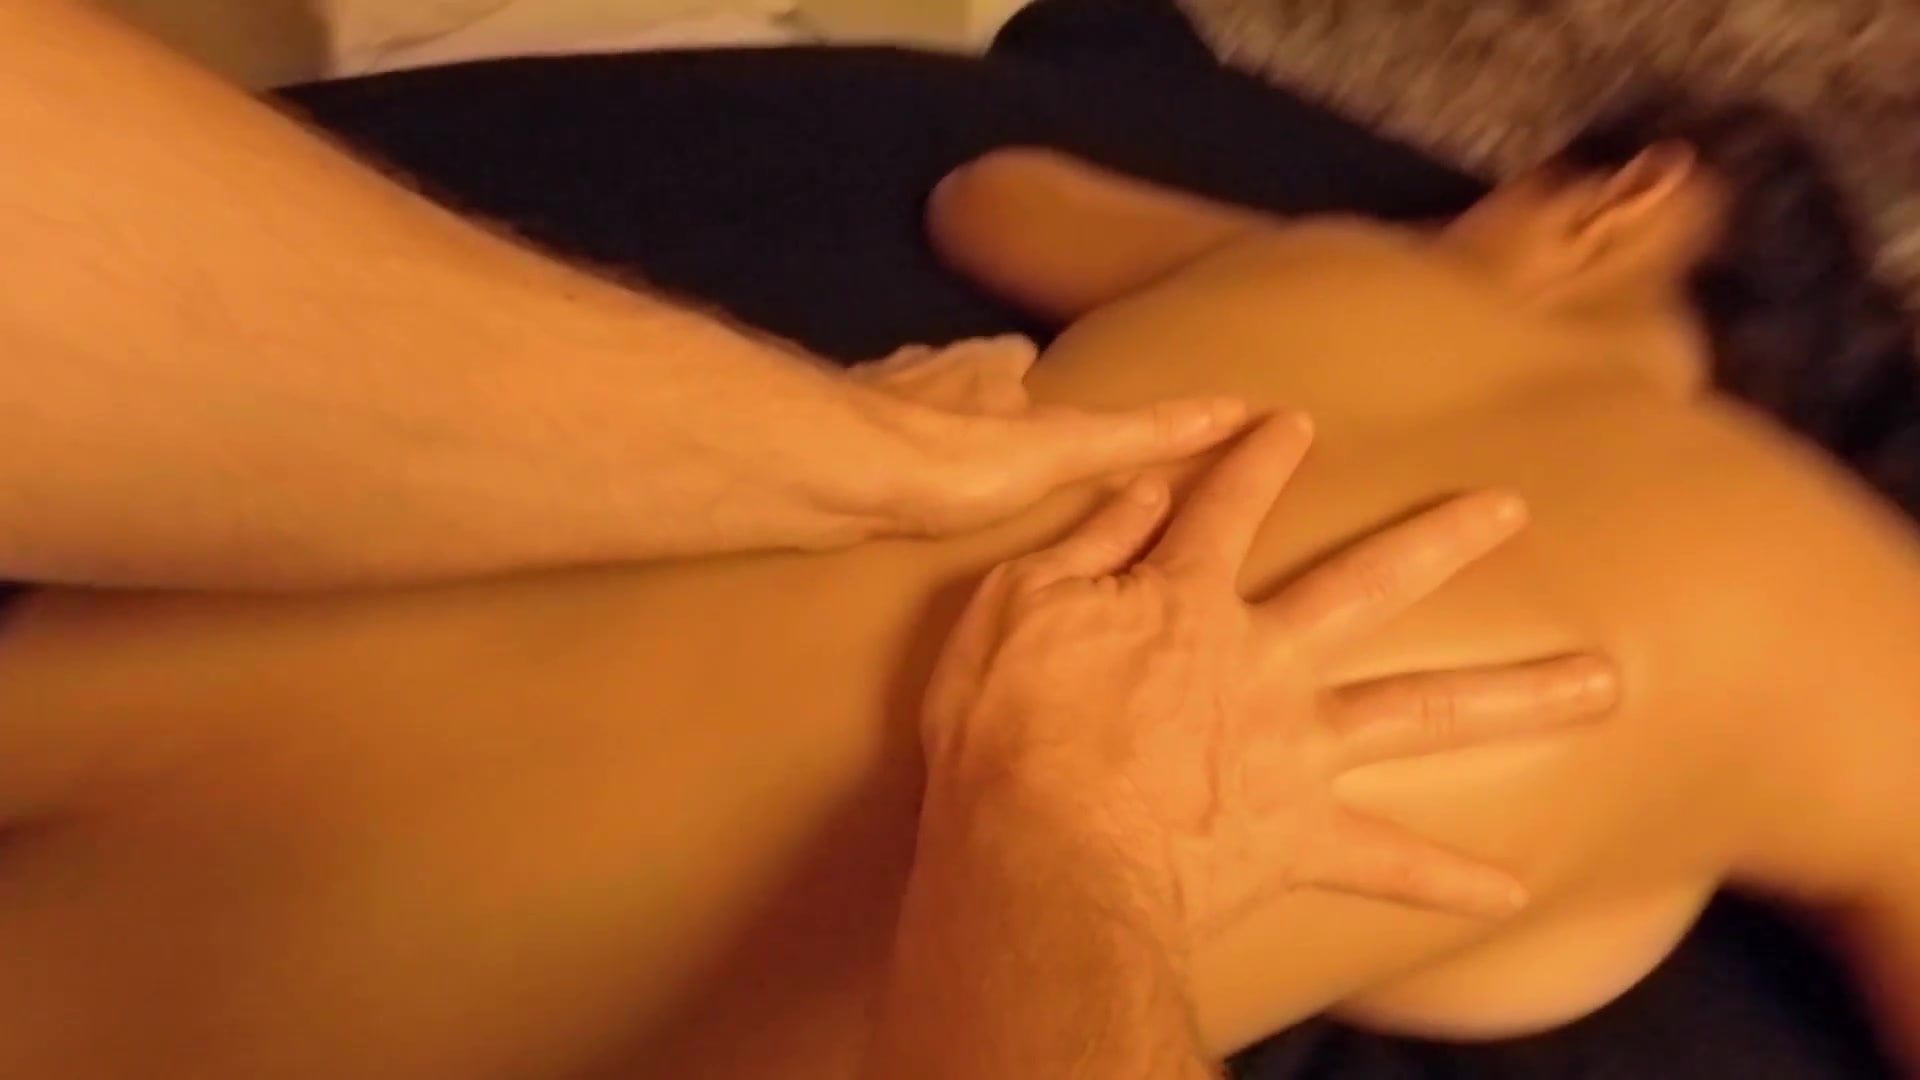 oiled amateur Squirting glamour